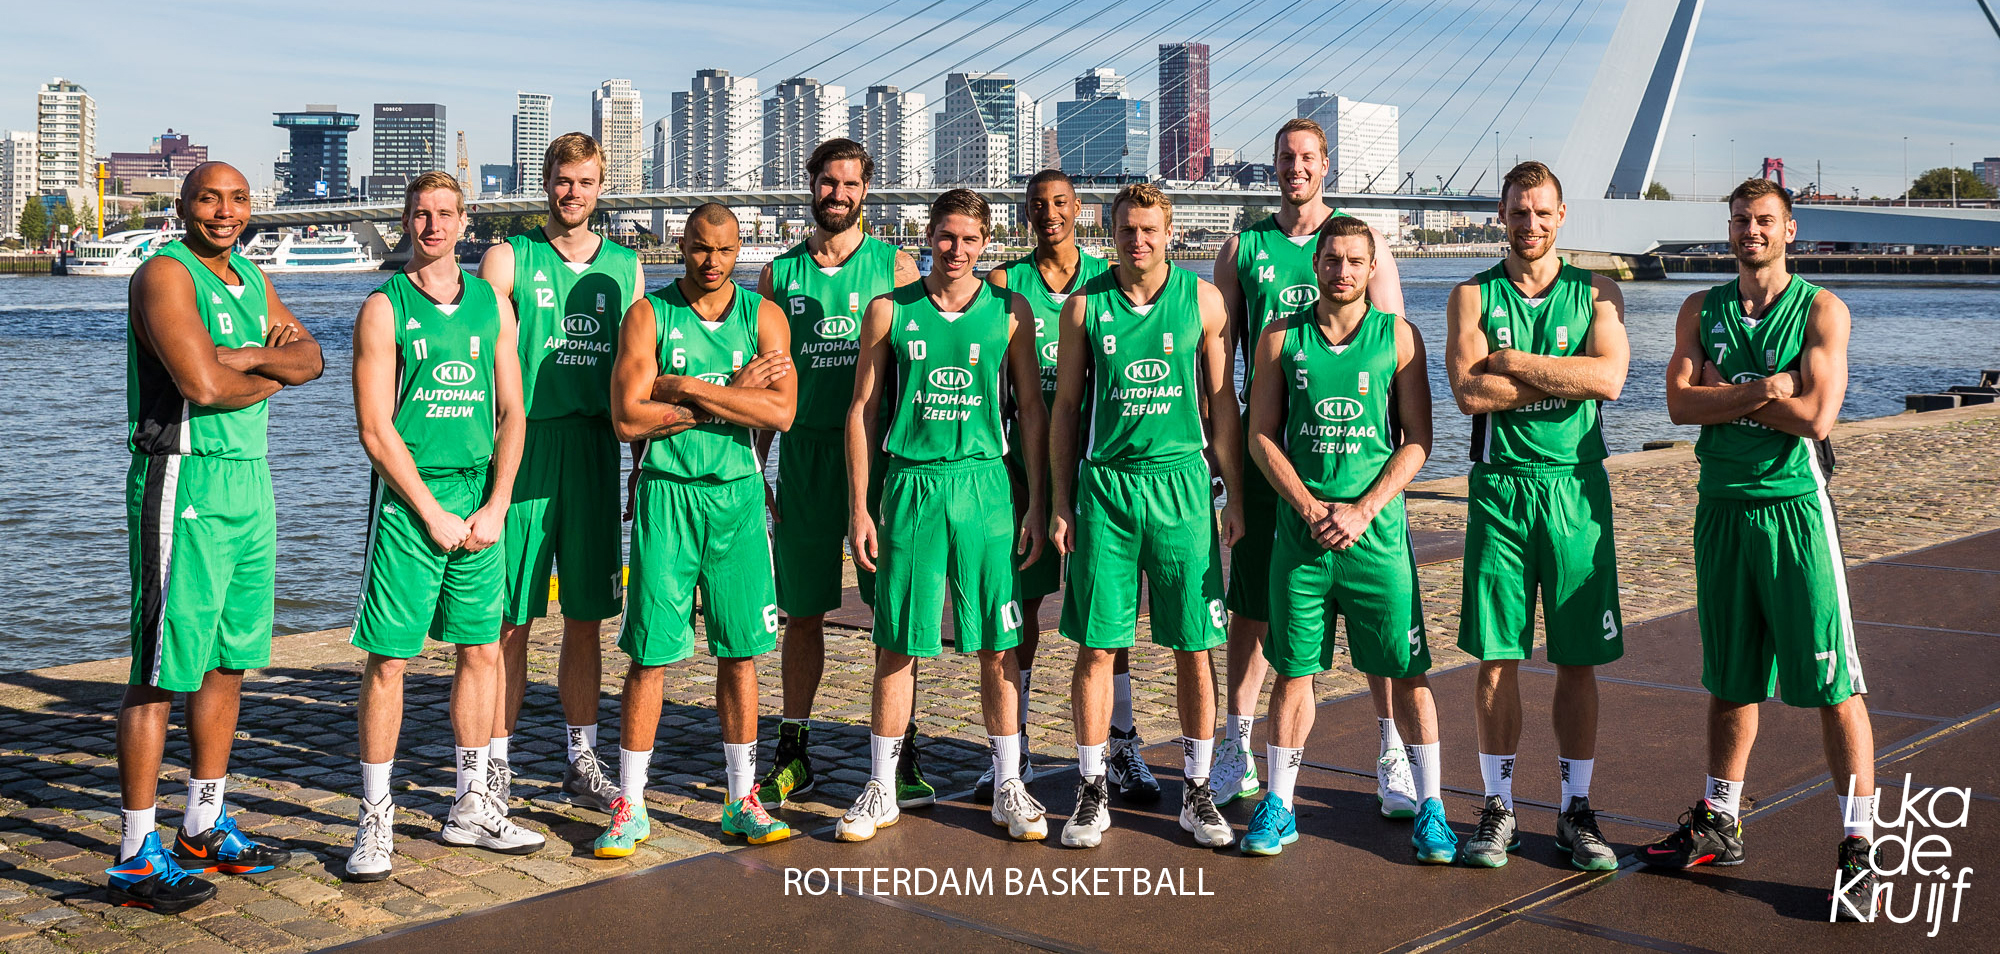 TEAM FOTO ROTTERDAM BASKETBALL